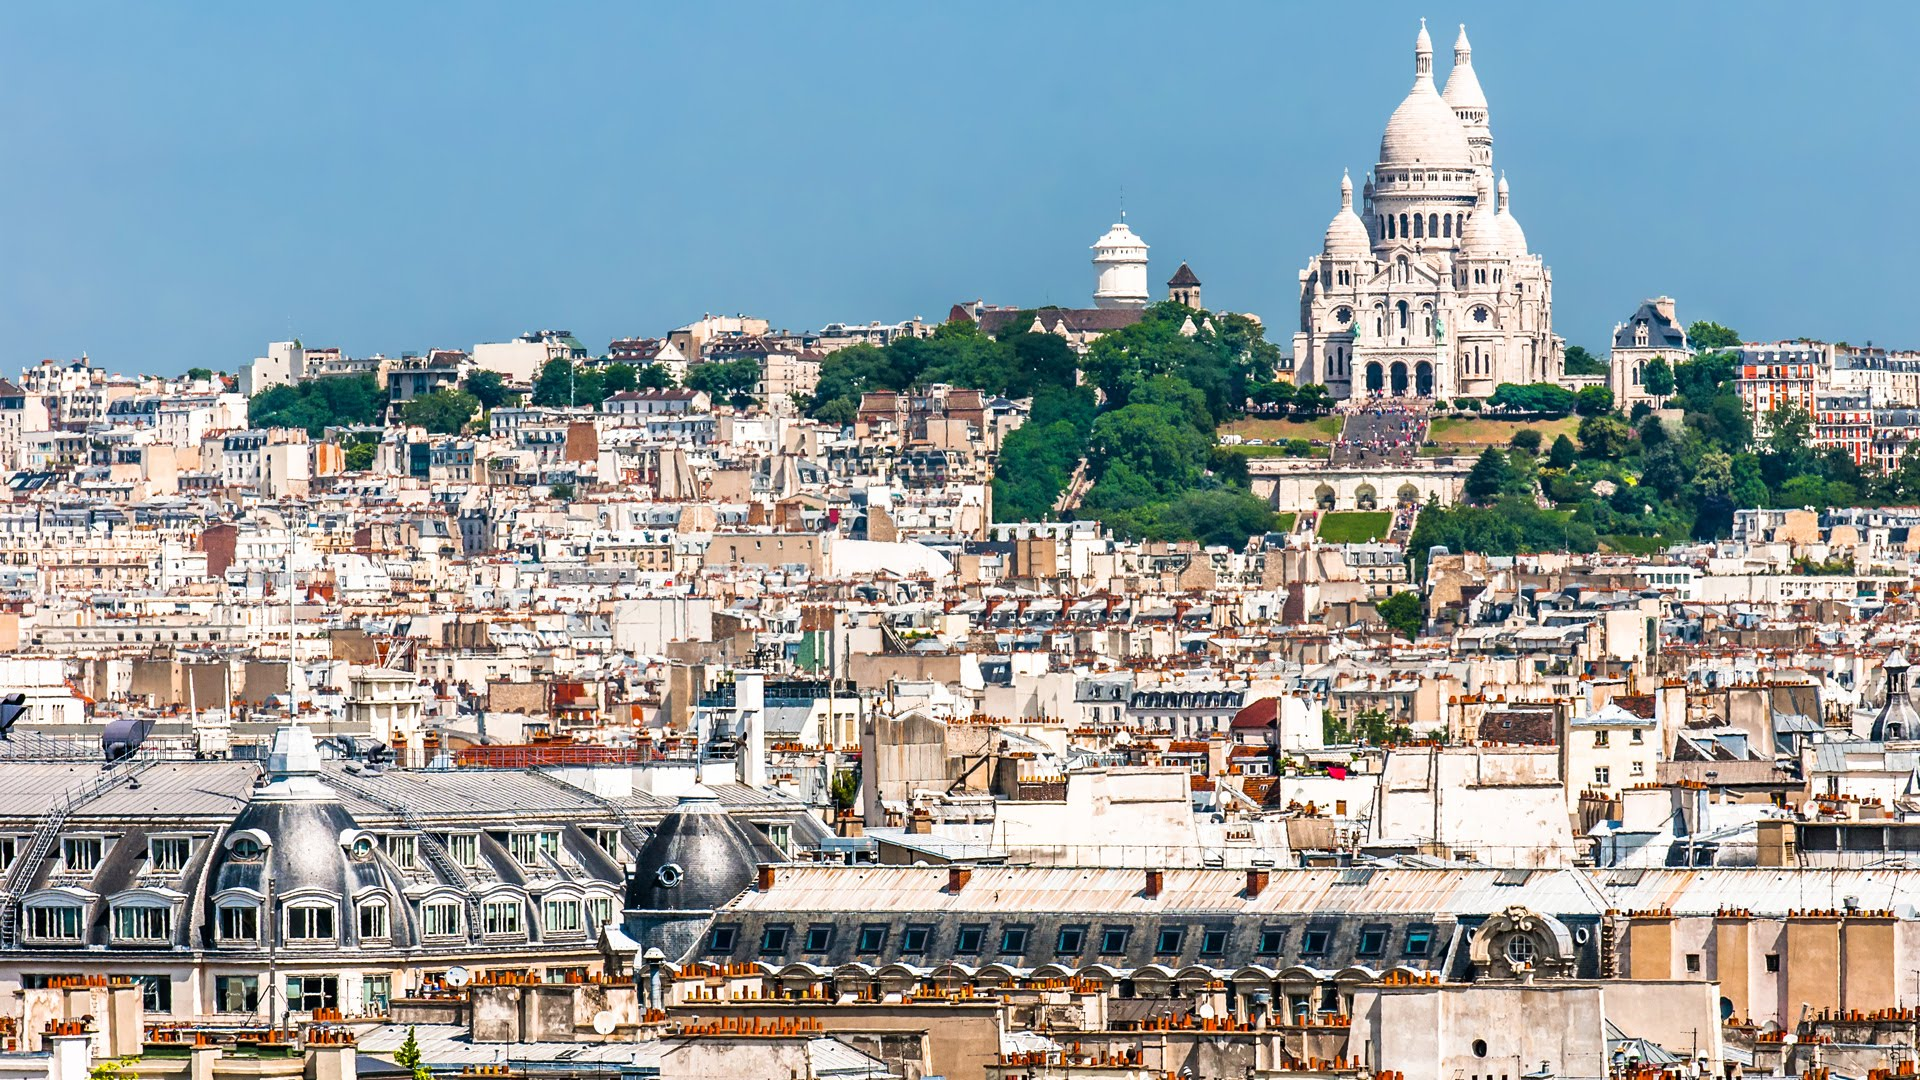 montmartre gestion locative airbnb paris